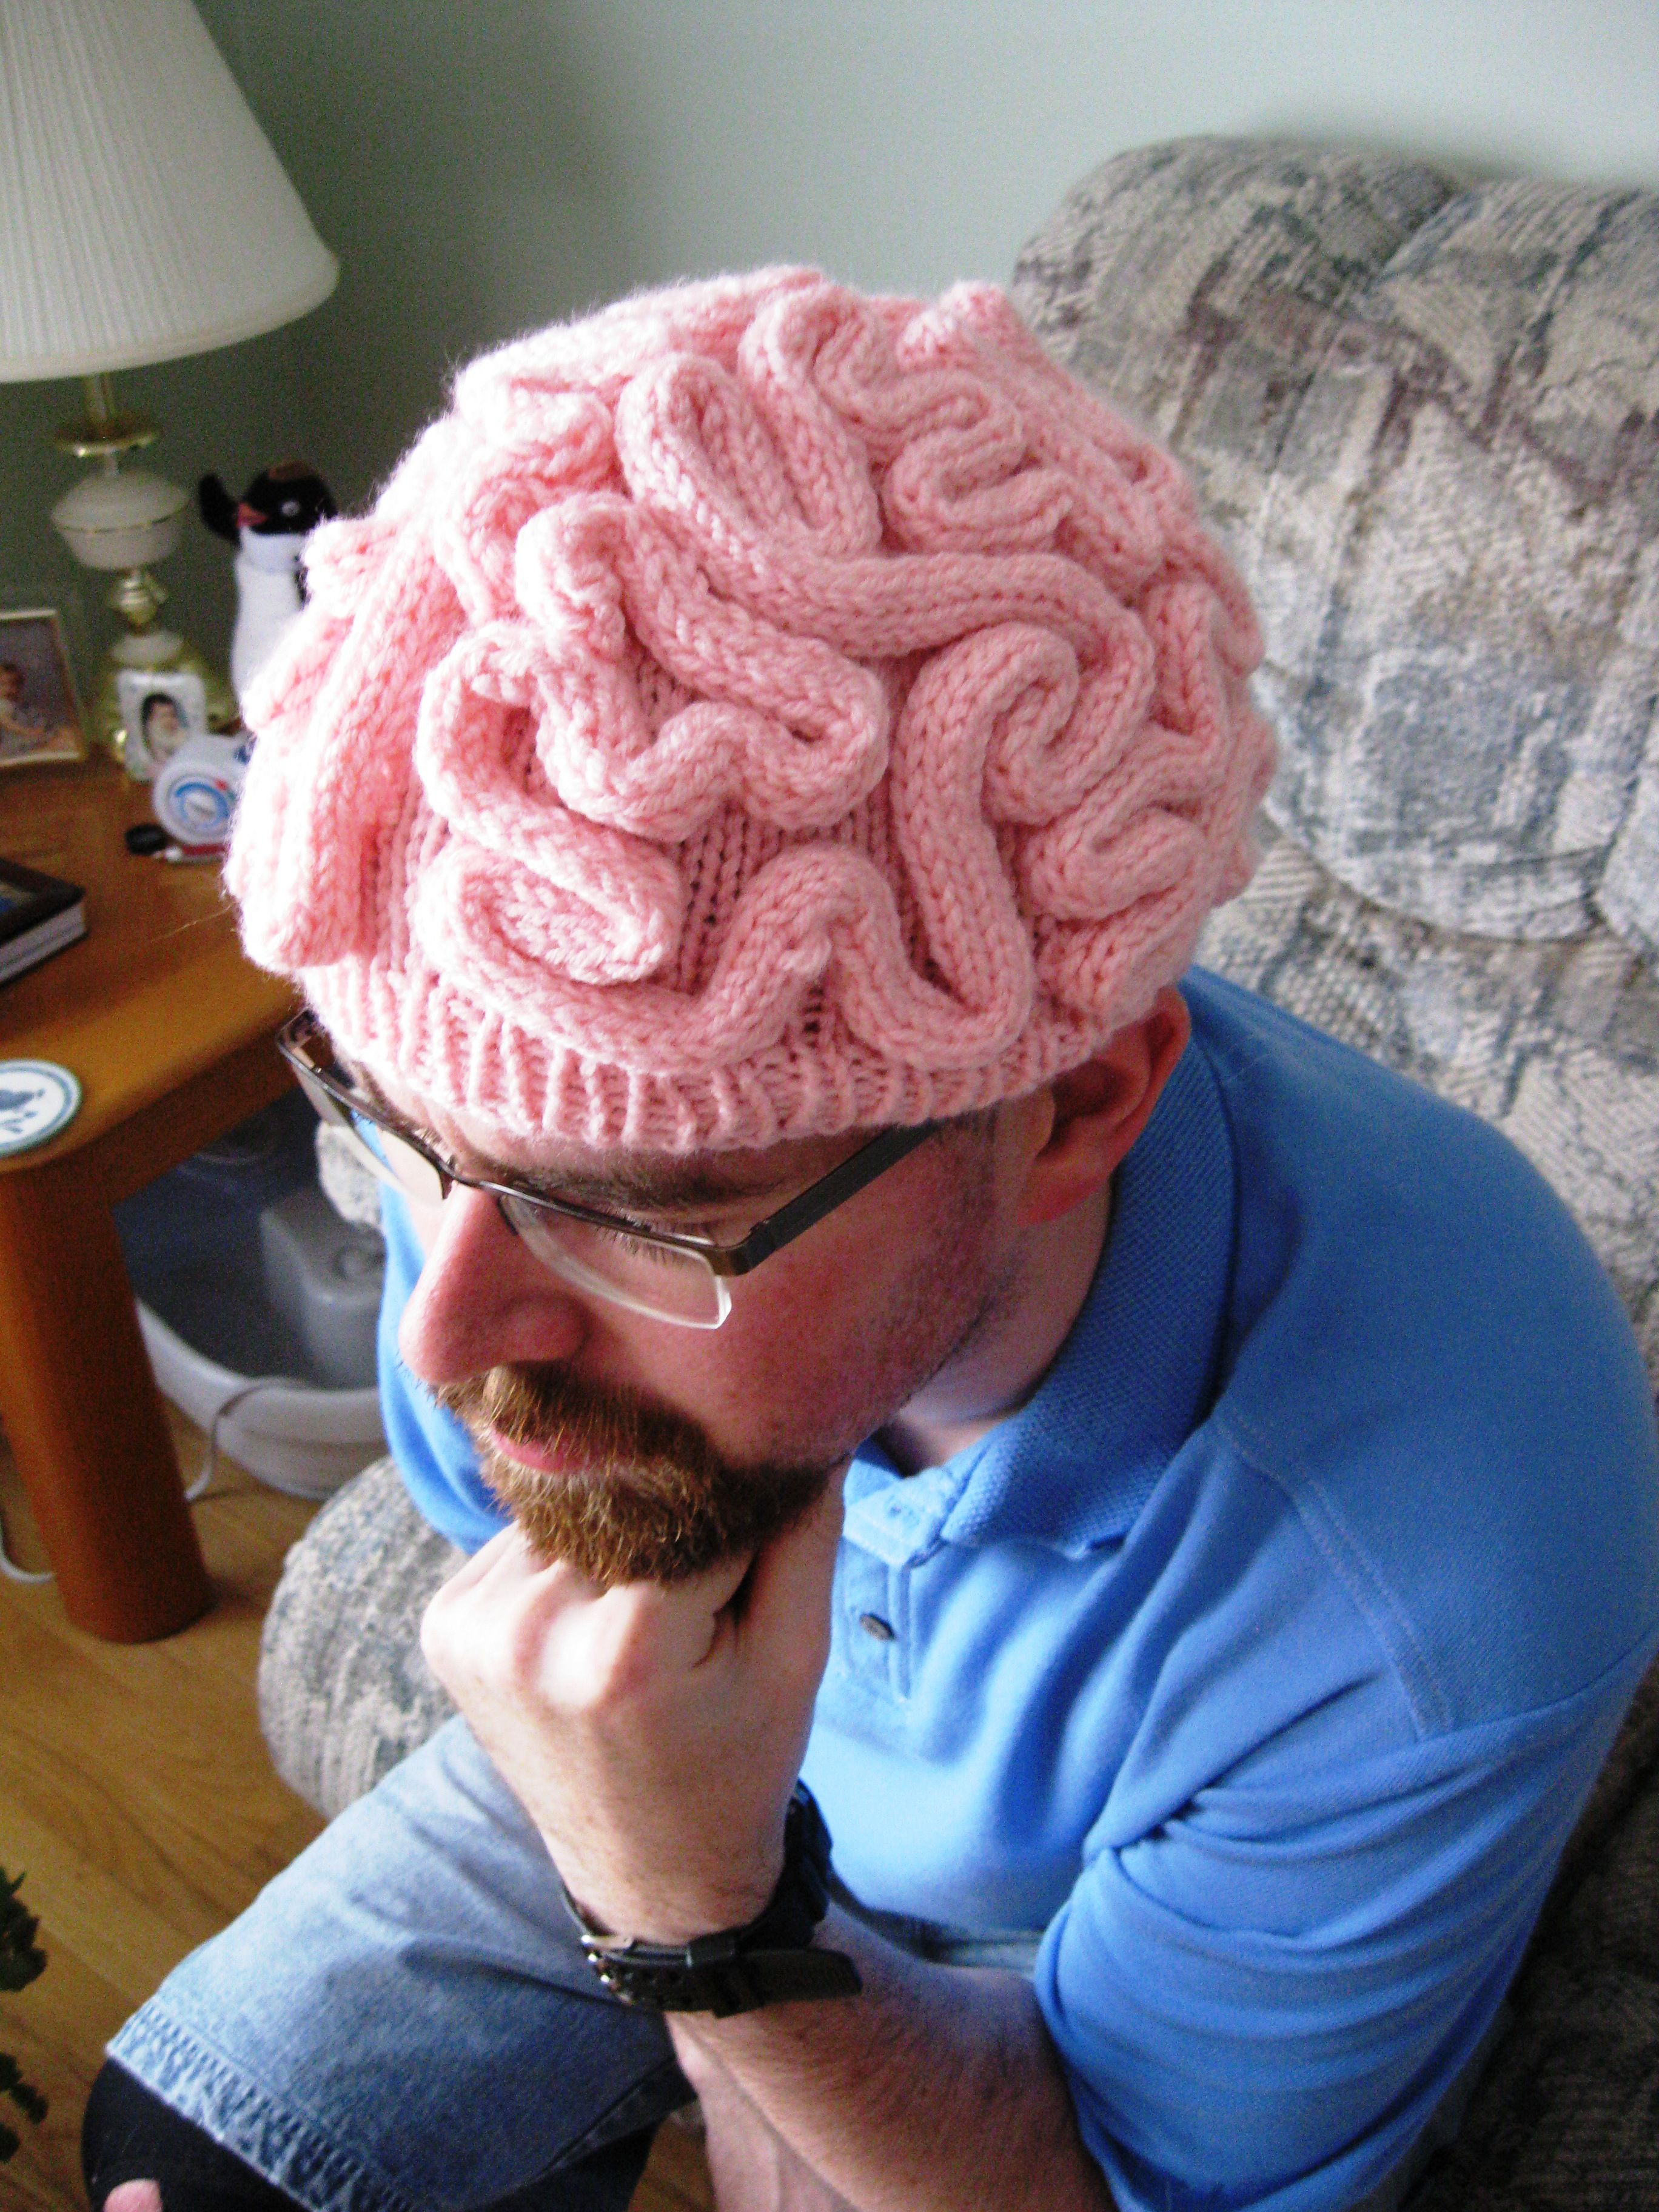 Free knitting pattern brain hat thinking cap and more fun hat free knitting pattern brain hat thinking cap you will need circular needles dpn 1 skein of bernat giggles tickled pink tapestry needle gauge 24 rows x bankloansurffo Images